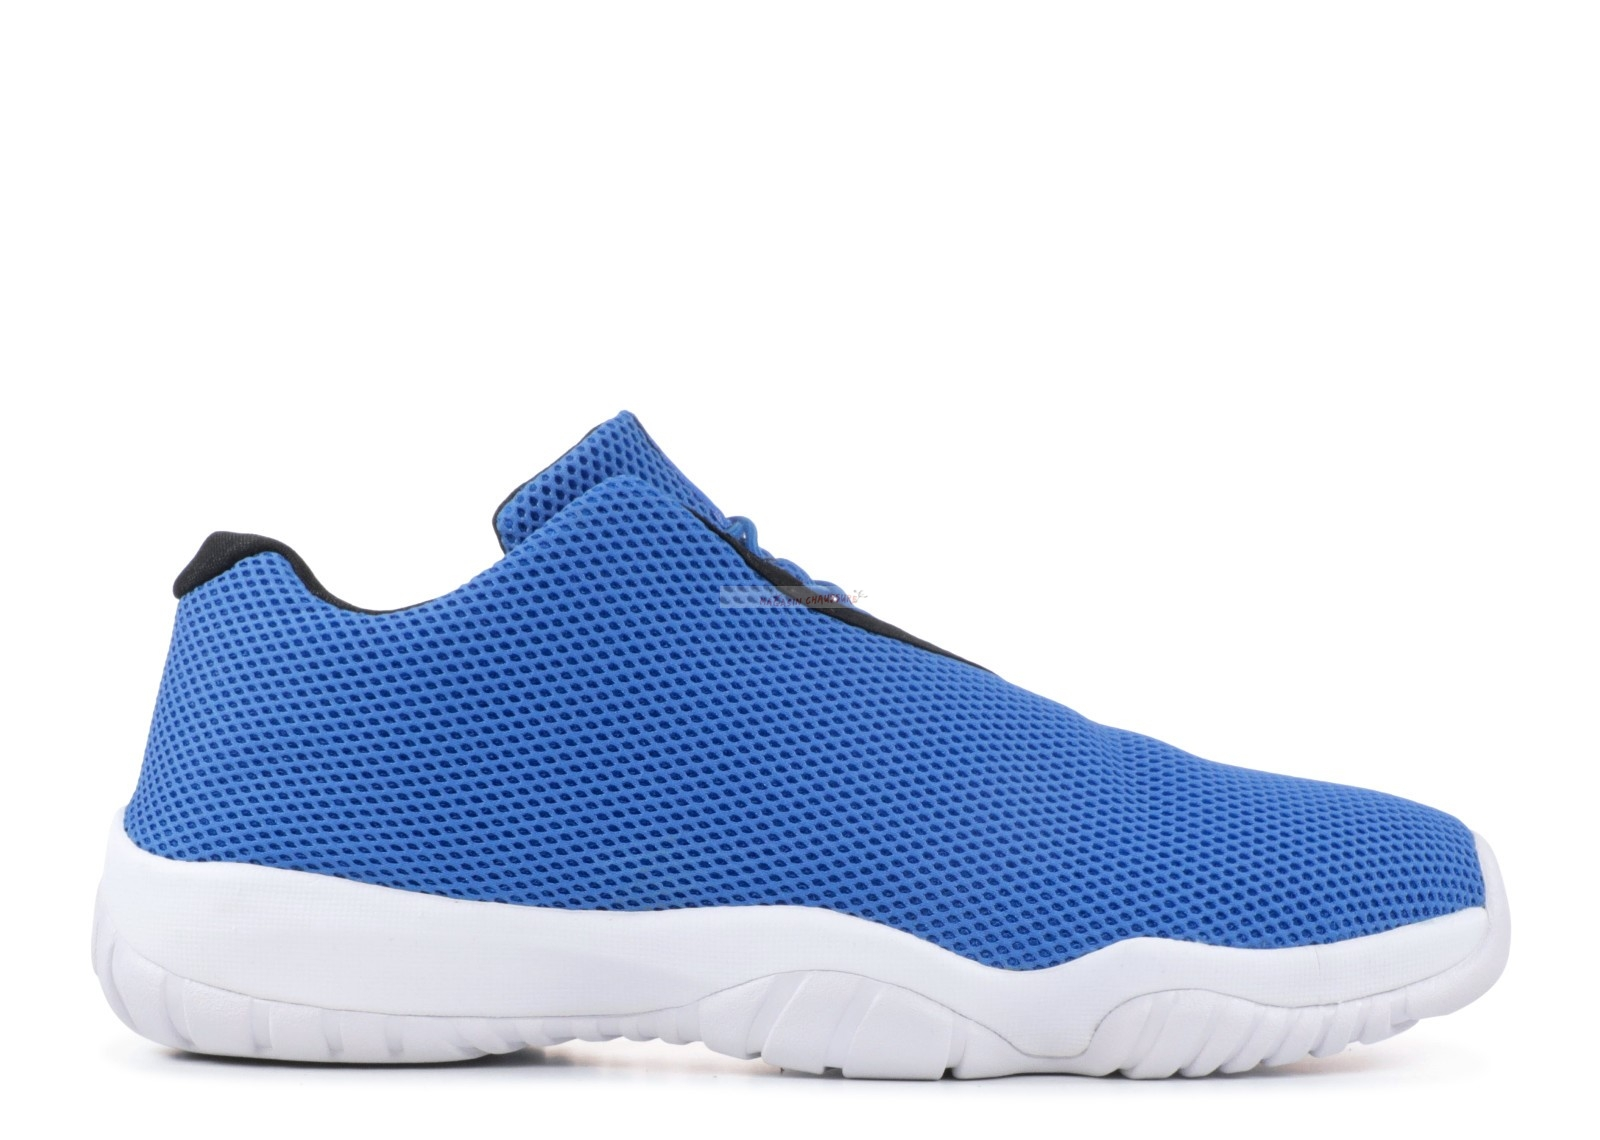 Air Jordan Future Low Bleu Blanc (718948-400) Chaussure de Basket